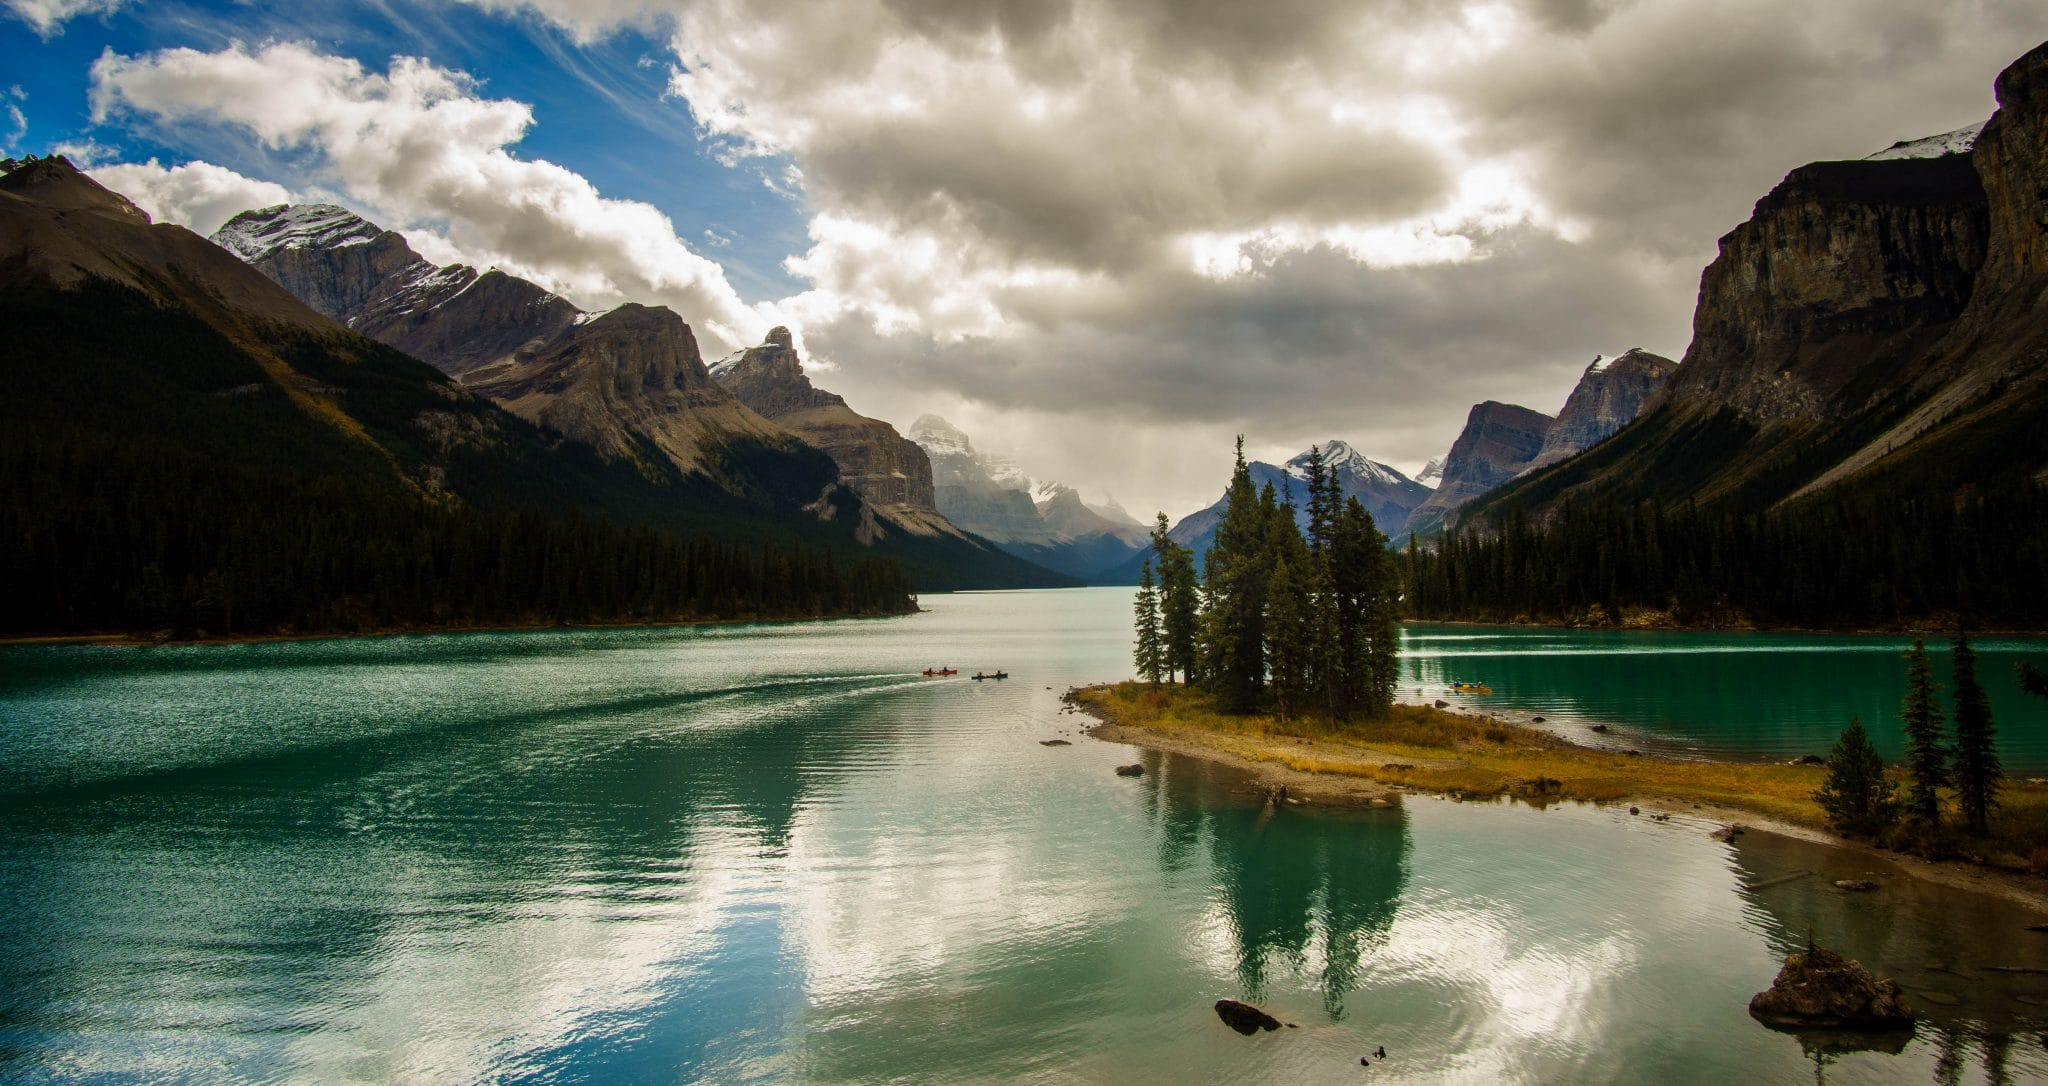 Camping on Maligne Lake - Everything You Need to Know to Plan Your Trip!